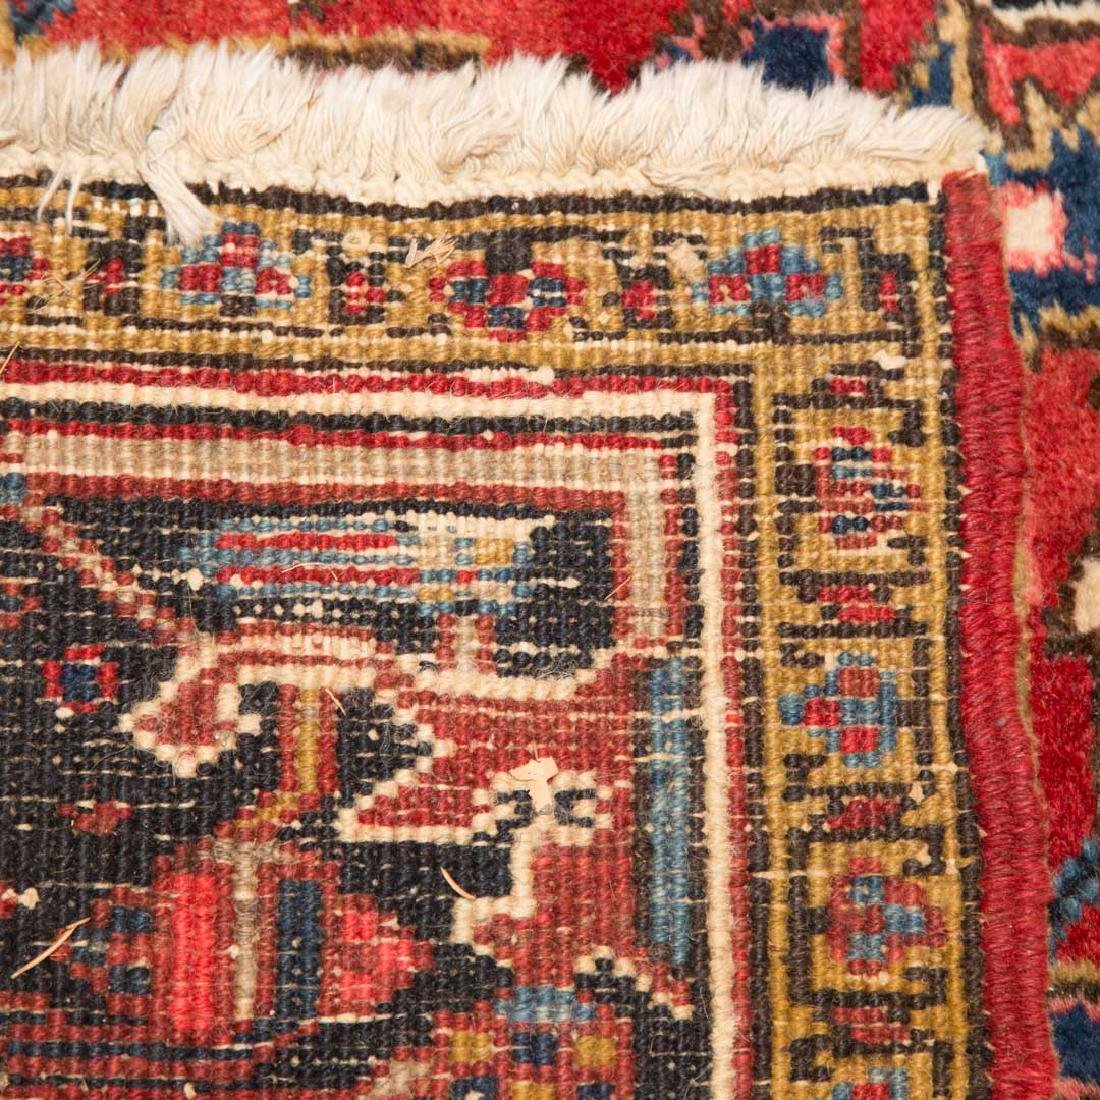 Persian Herez rug, approx. 6.7 x 8.8 - 3